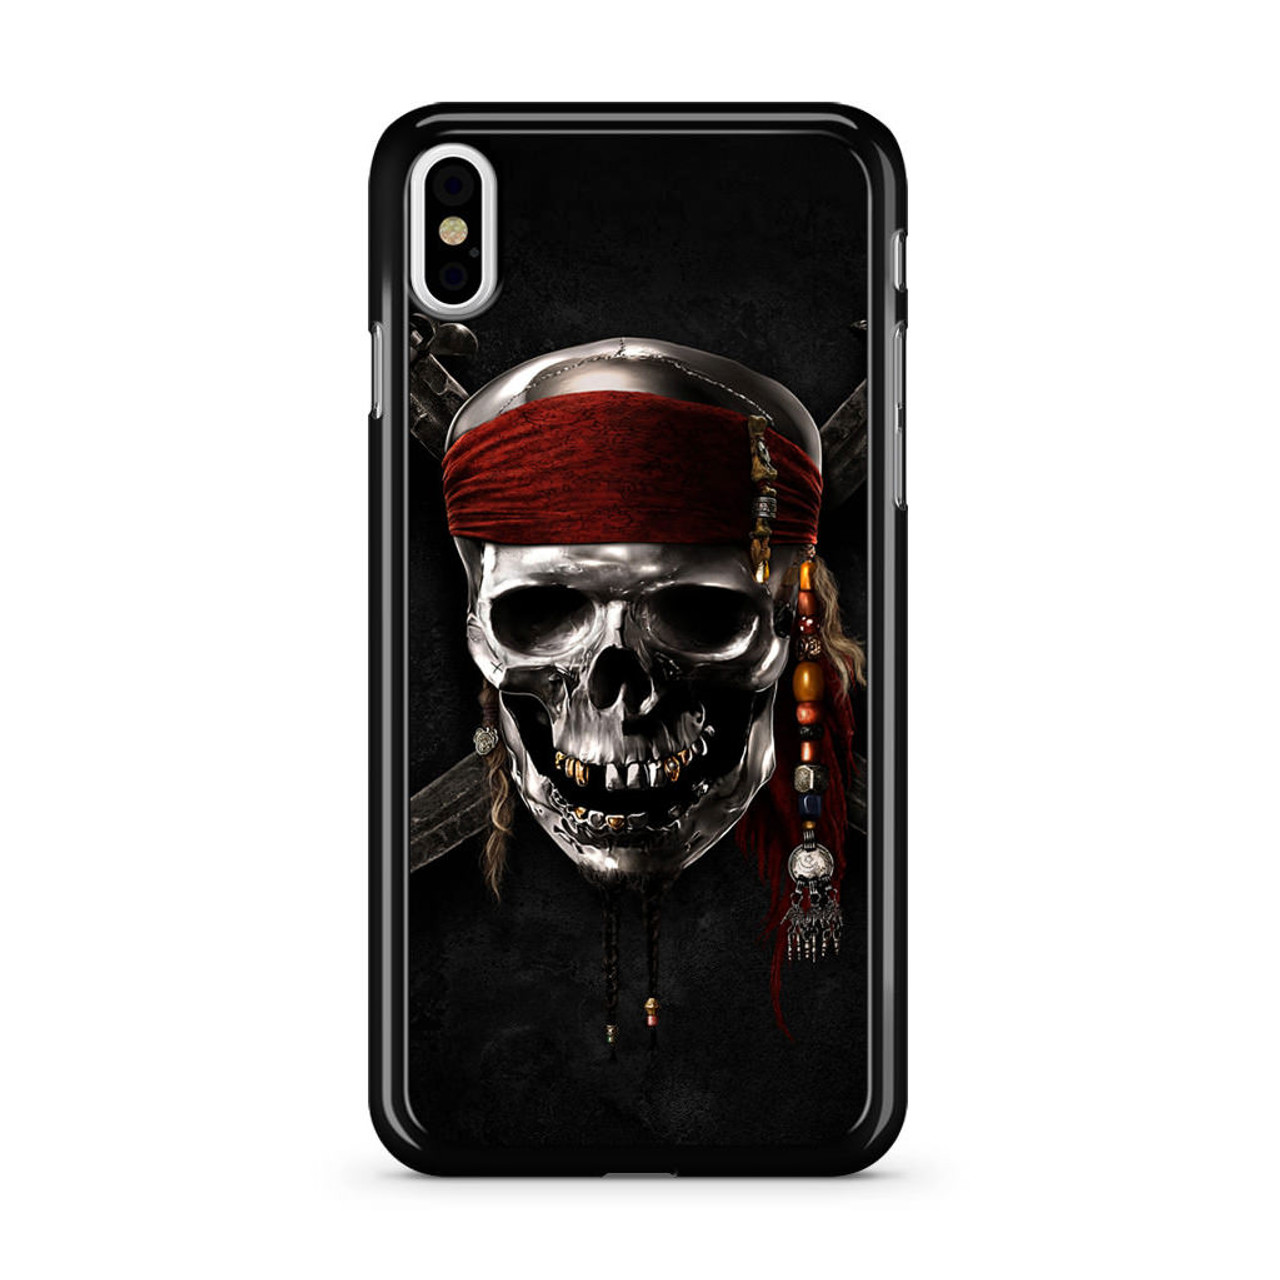 the latest 6ae99 853bd Pirates of Carribean Skull Logo iPhone X Case